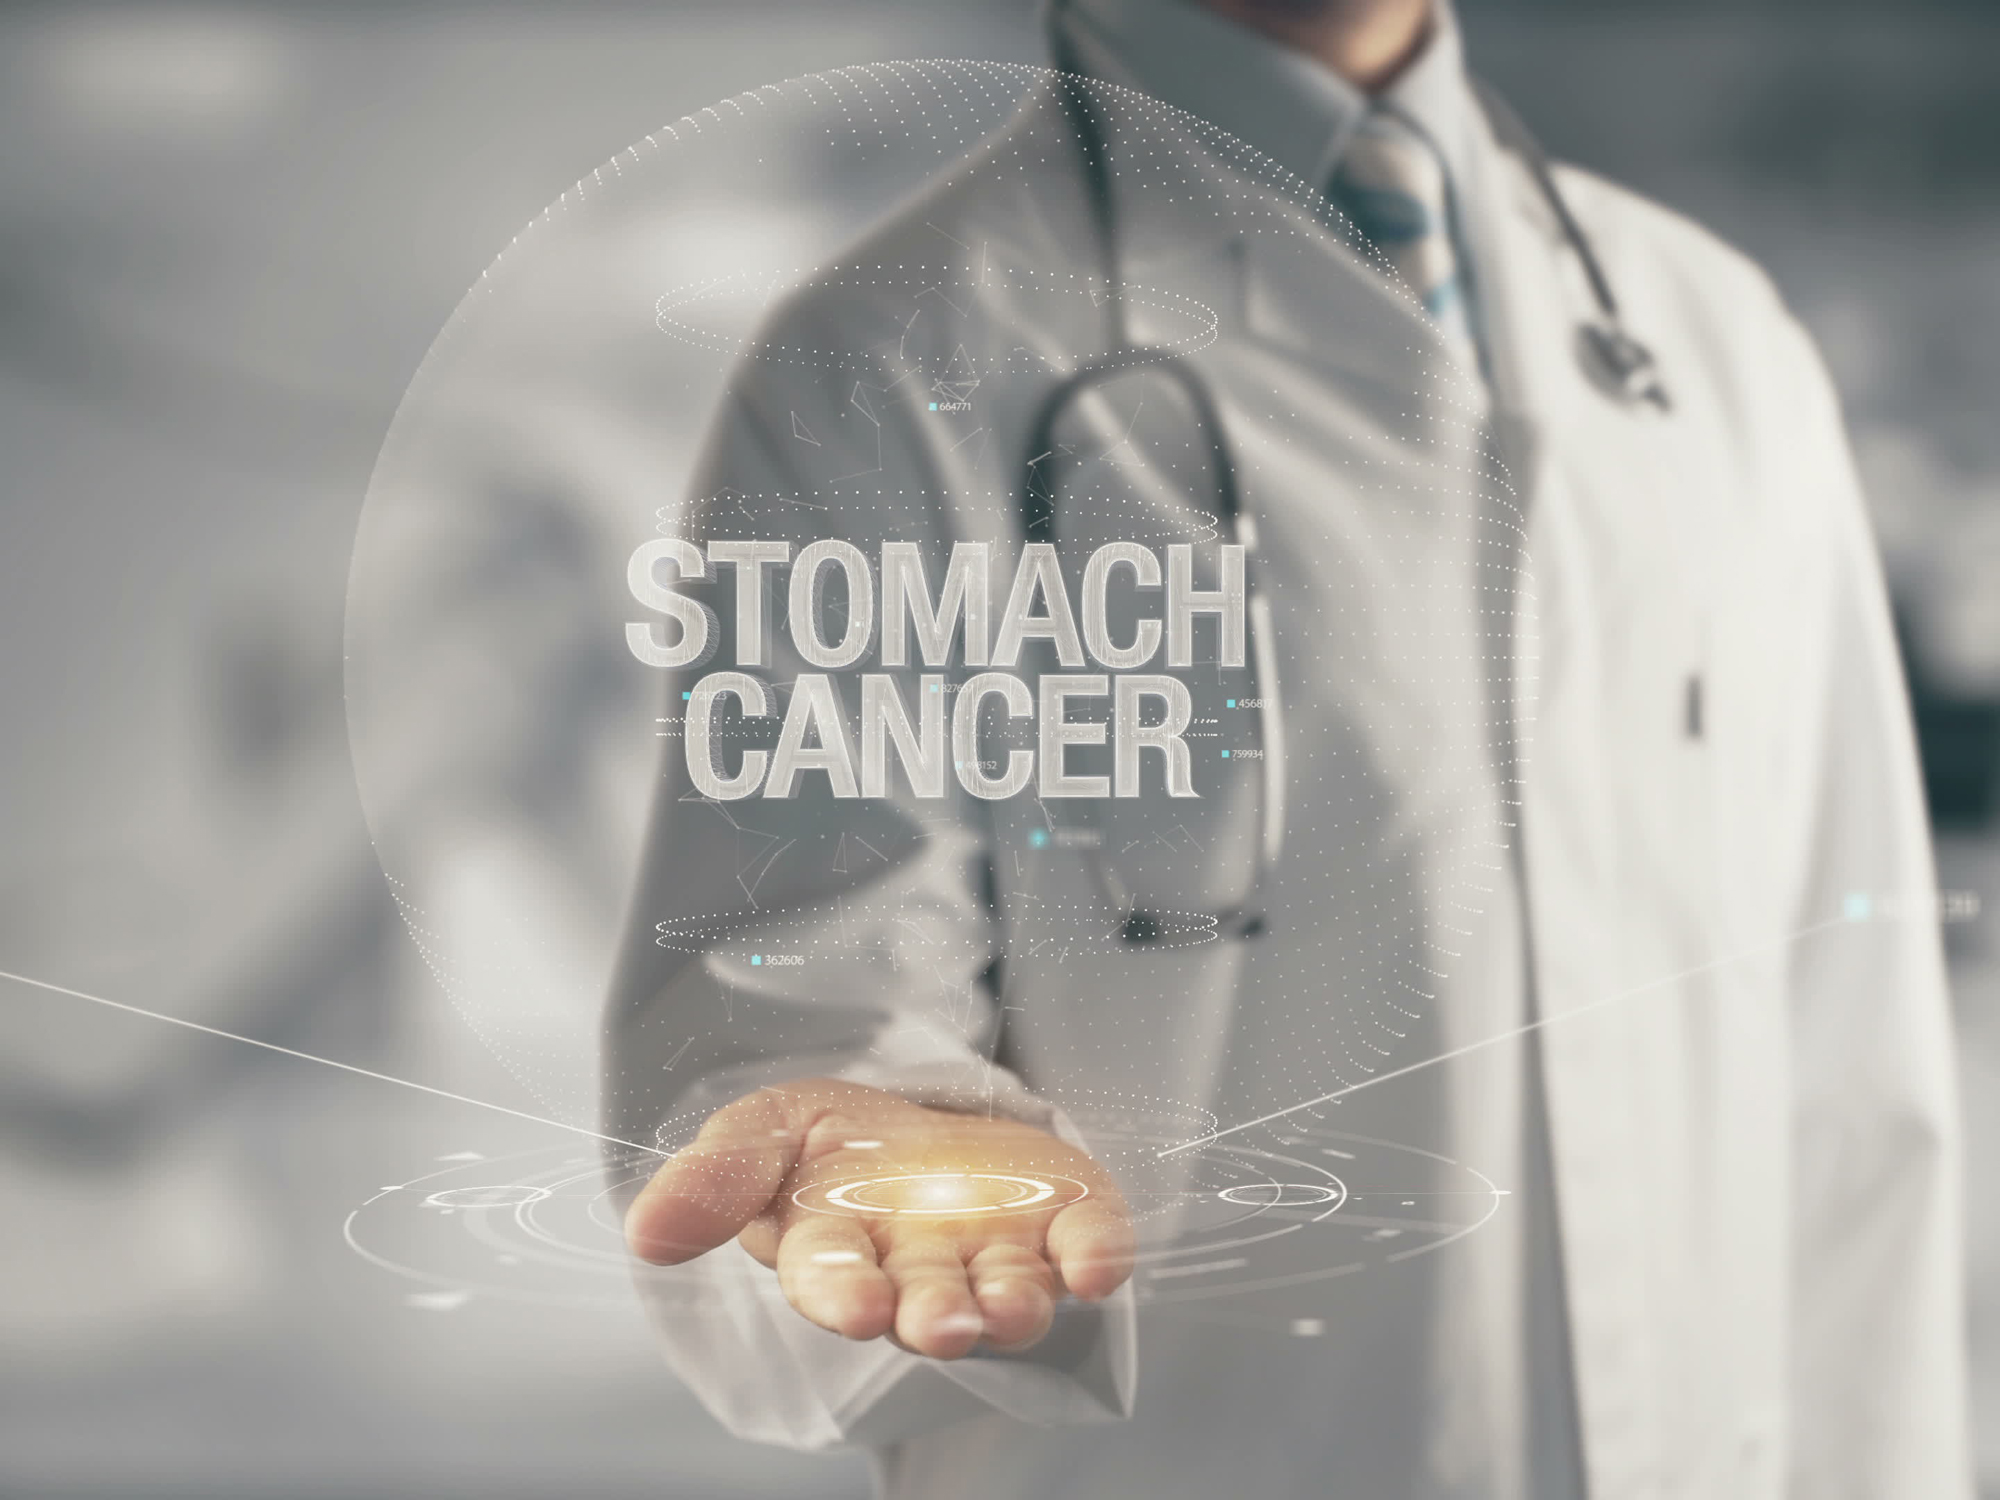 The compound with the most scientific cred against stomach cancer